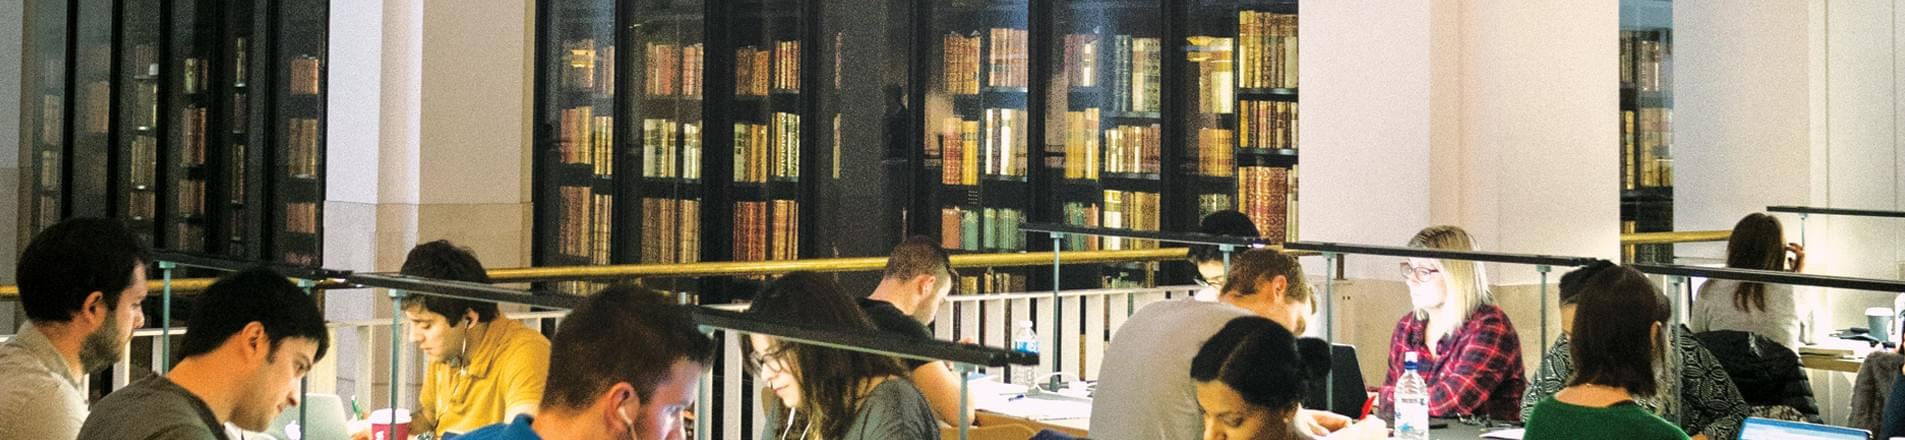 A group of people working in the British Library